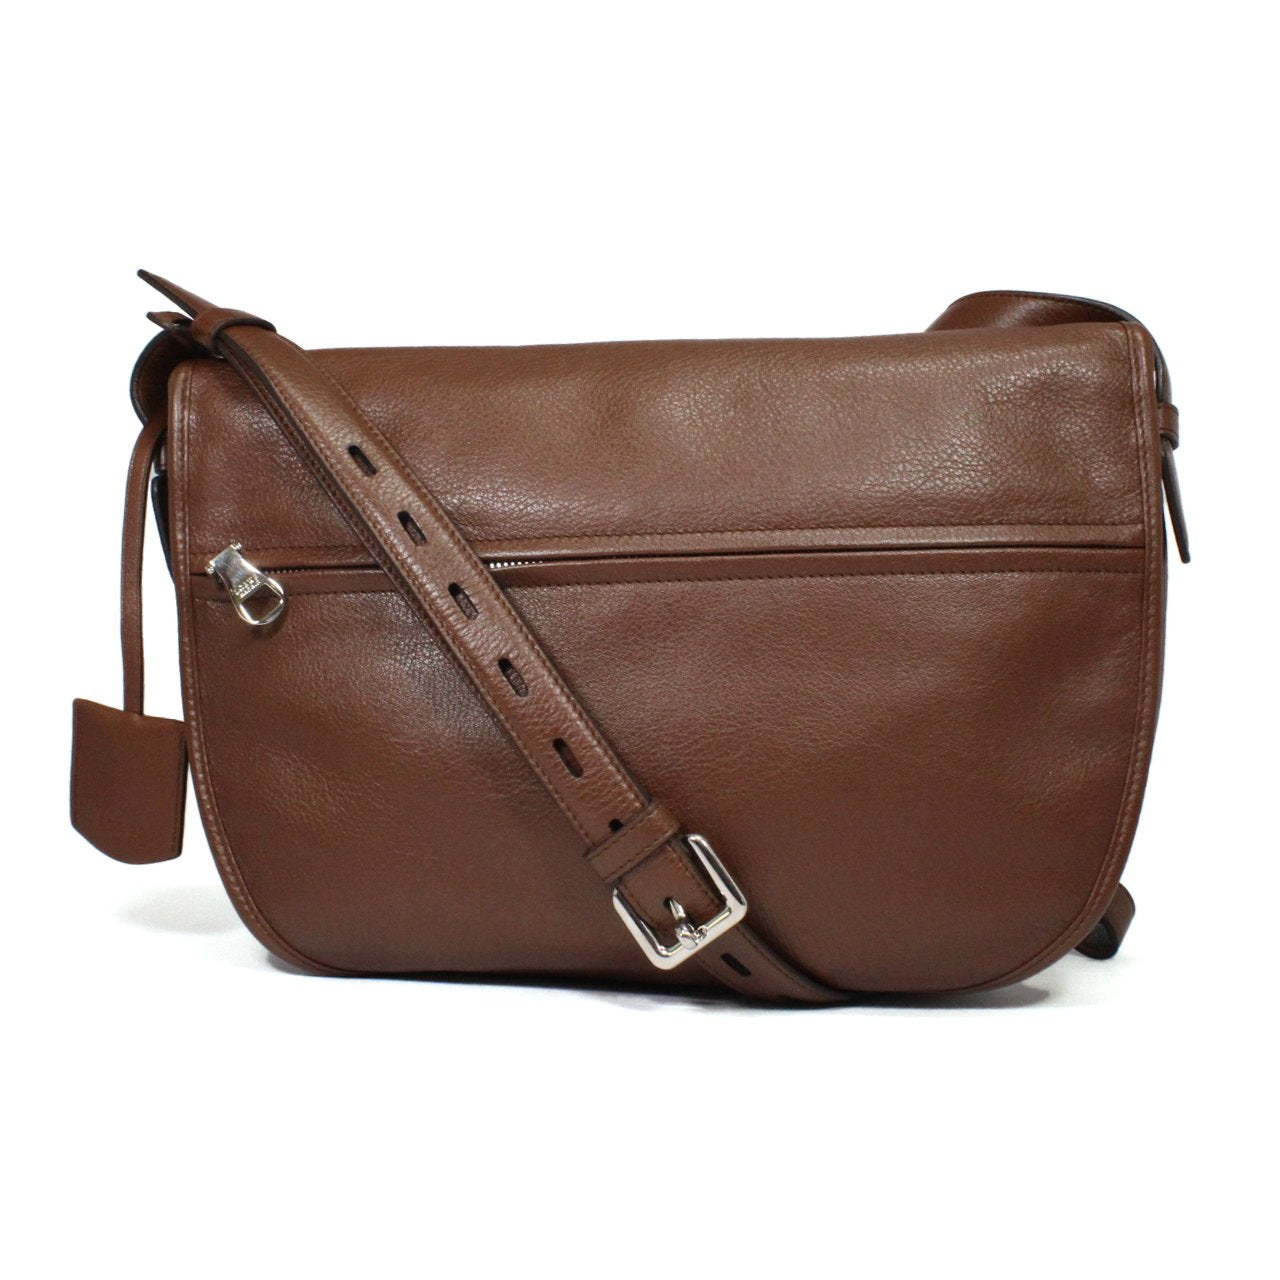 Loewe Heritage Tan Leather Satchel Shoulder Bag